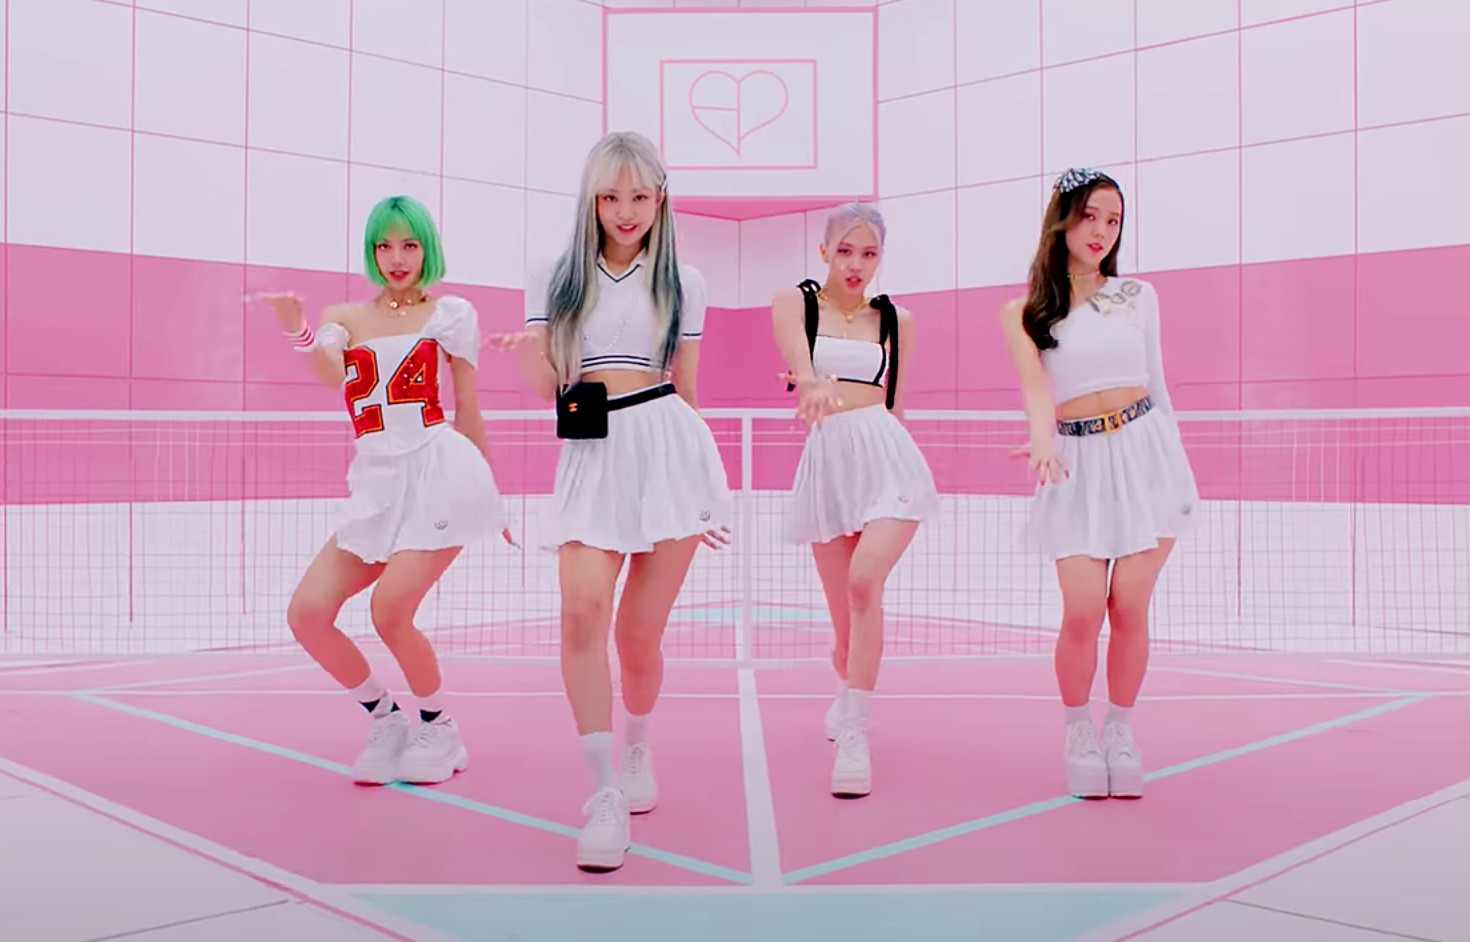 Blackpink in their new music video